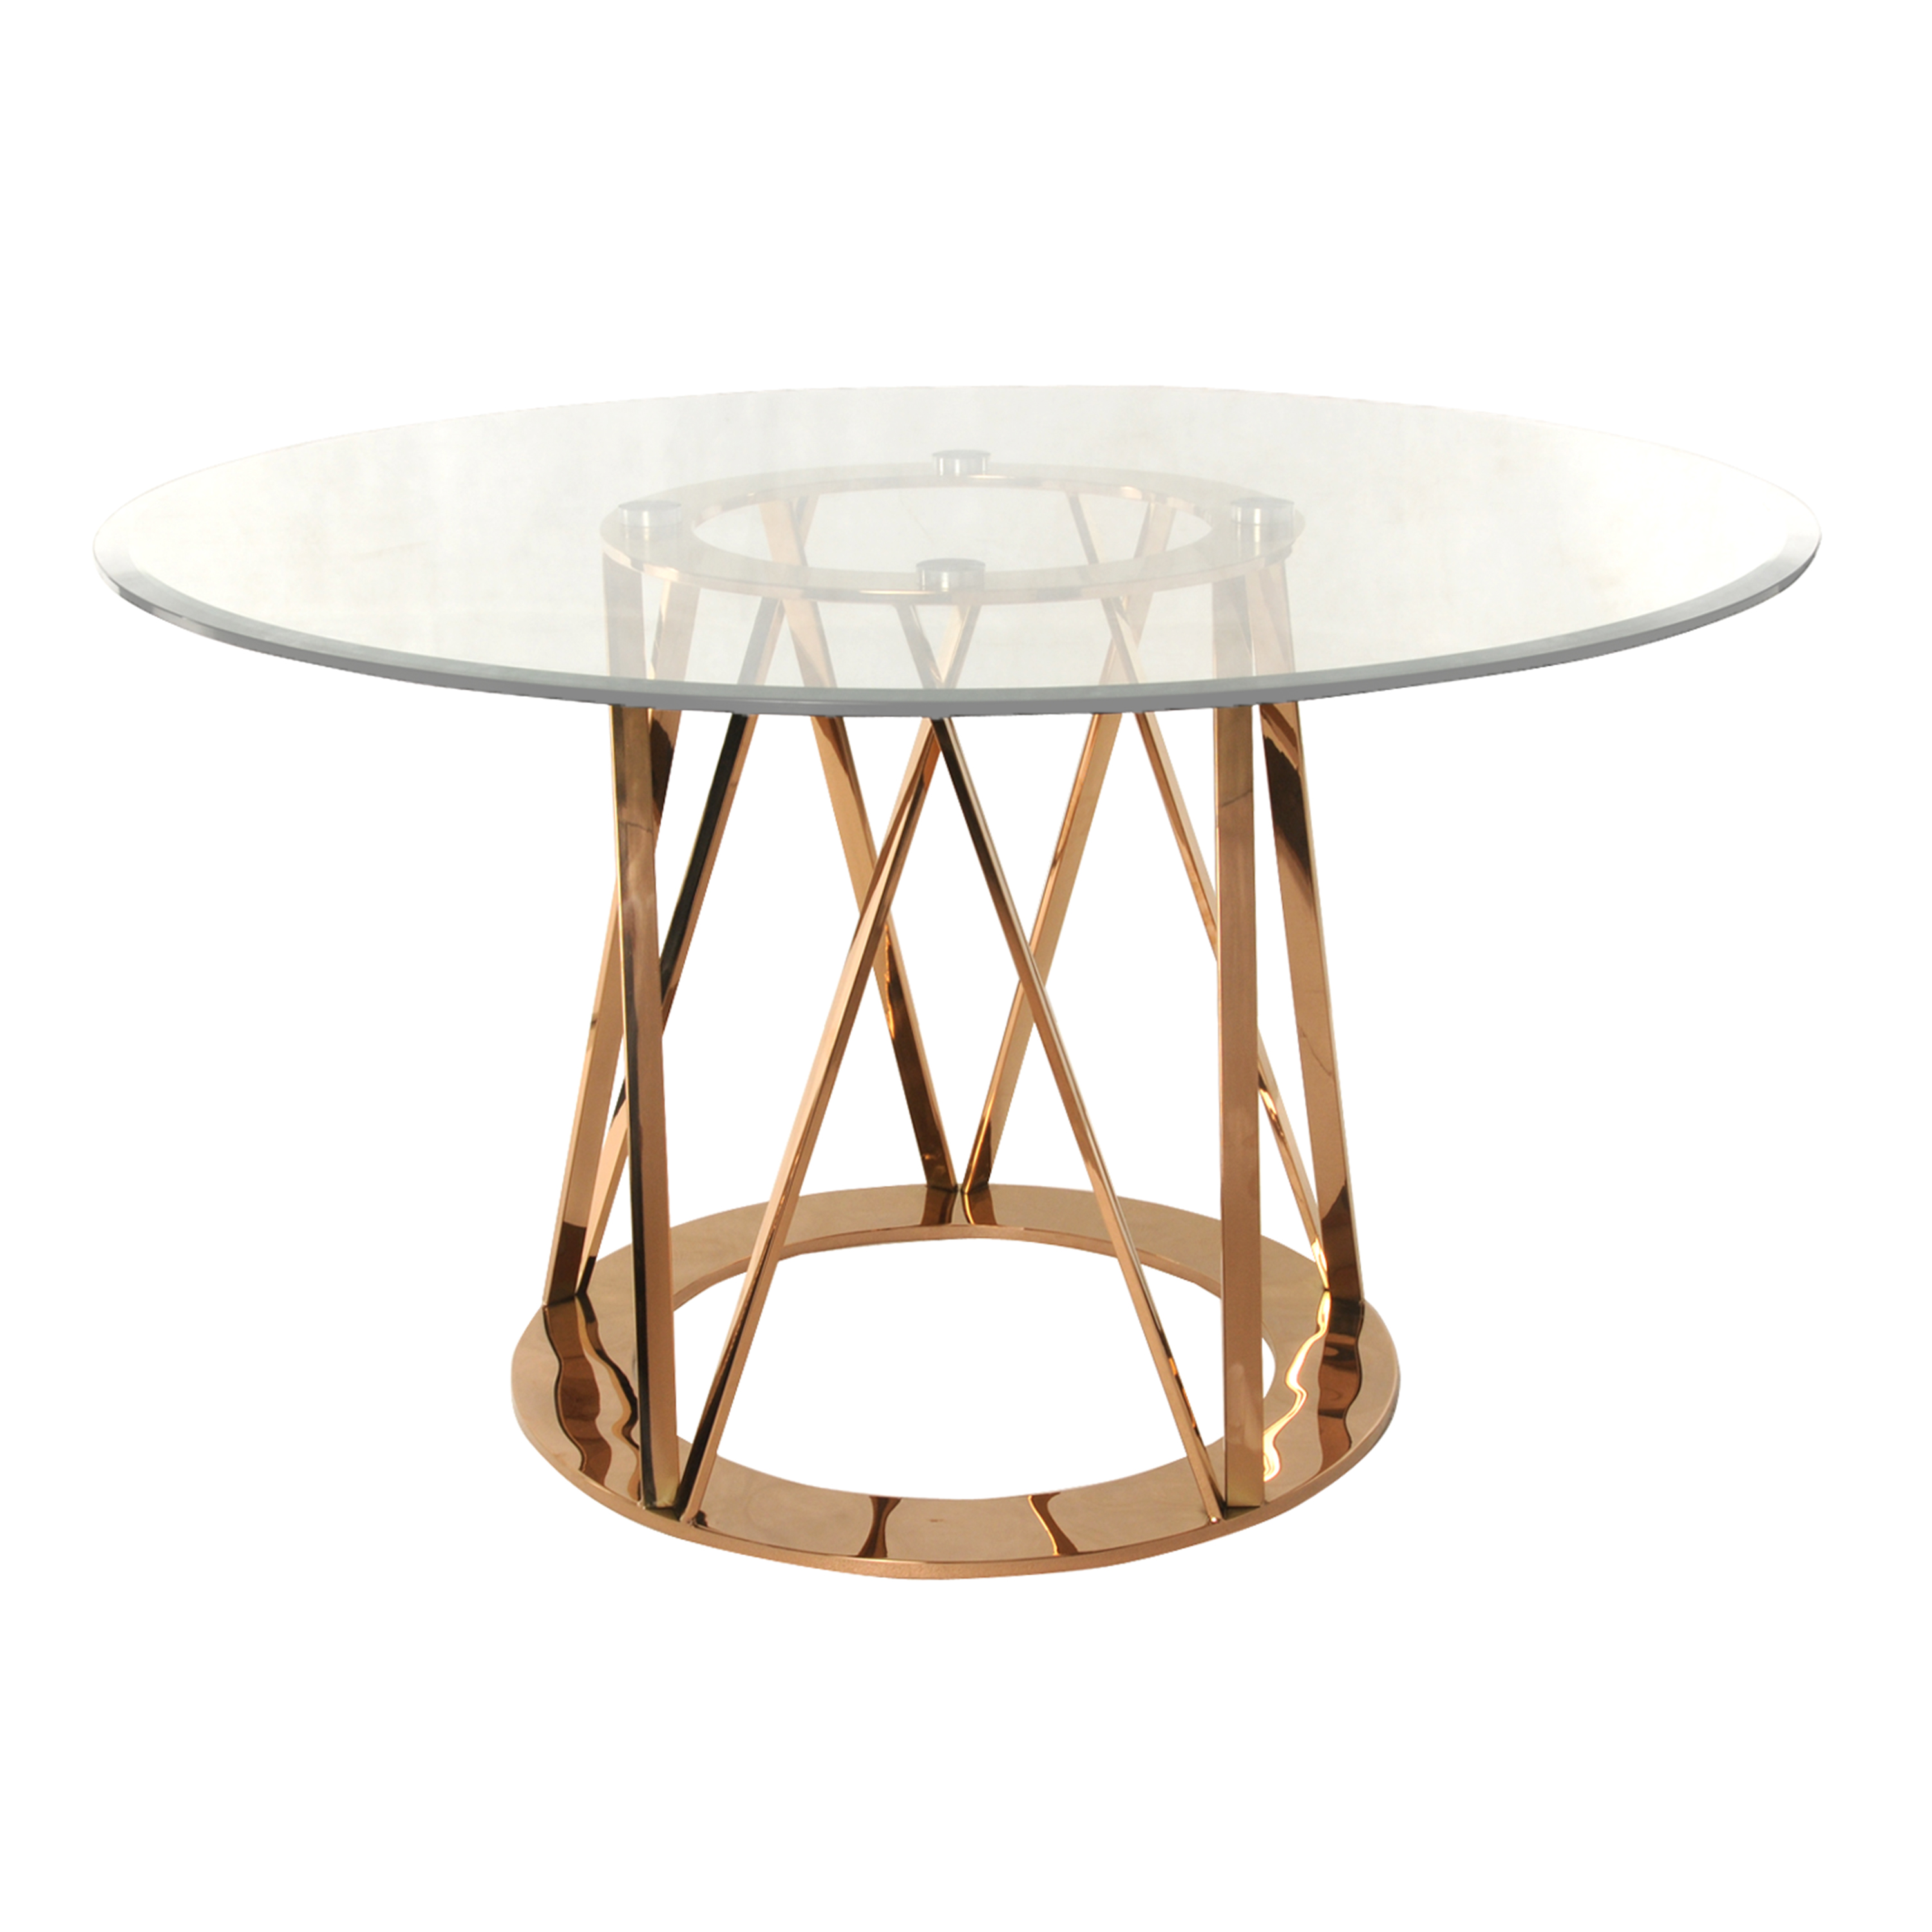 Rolin Round Dining Table, Rose Gold by NPD